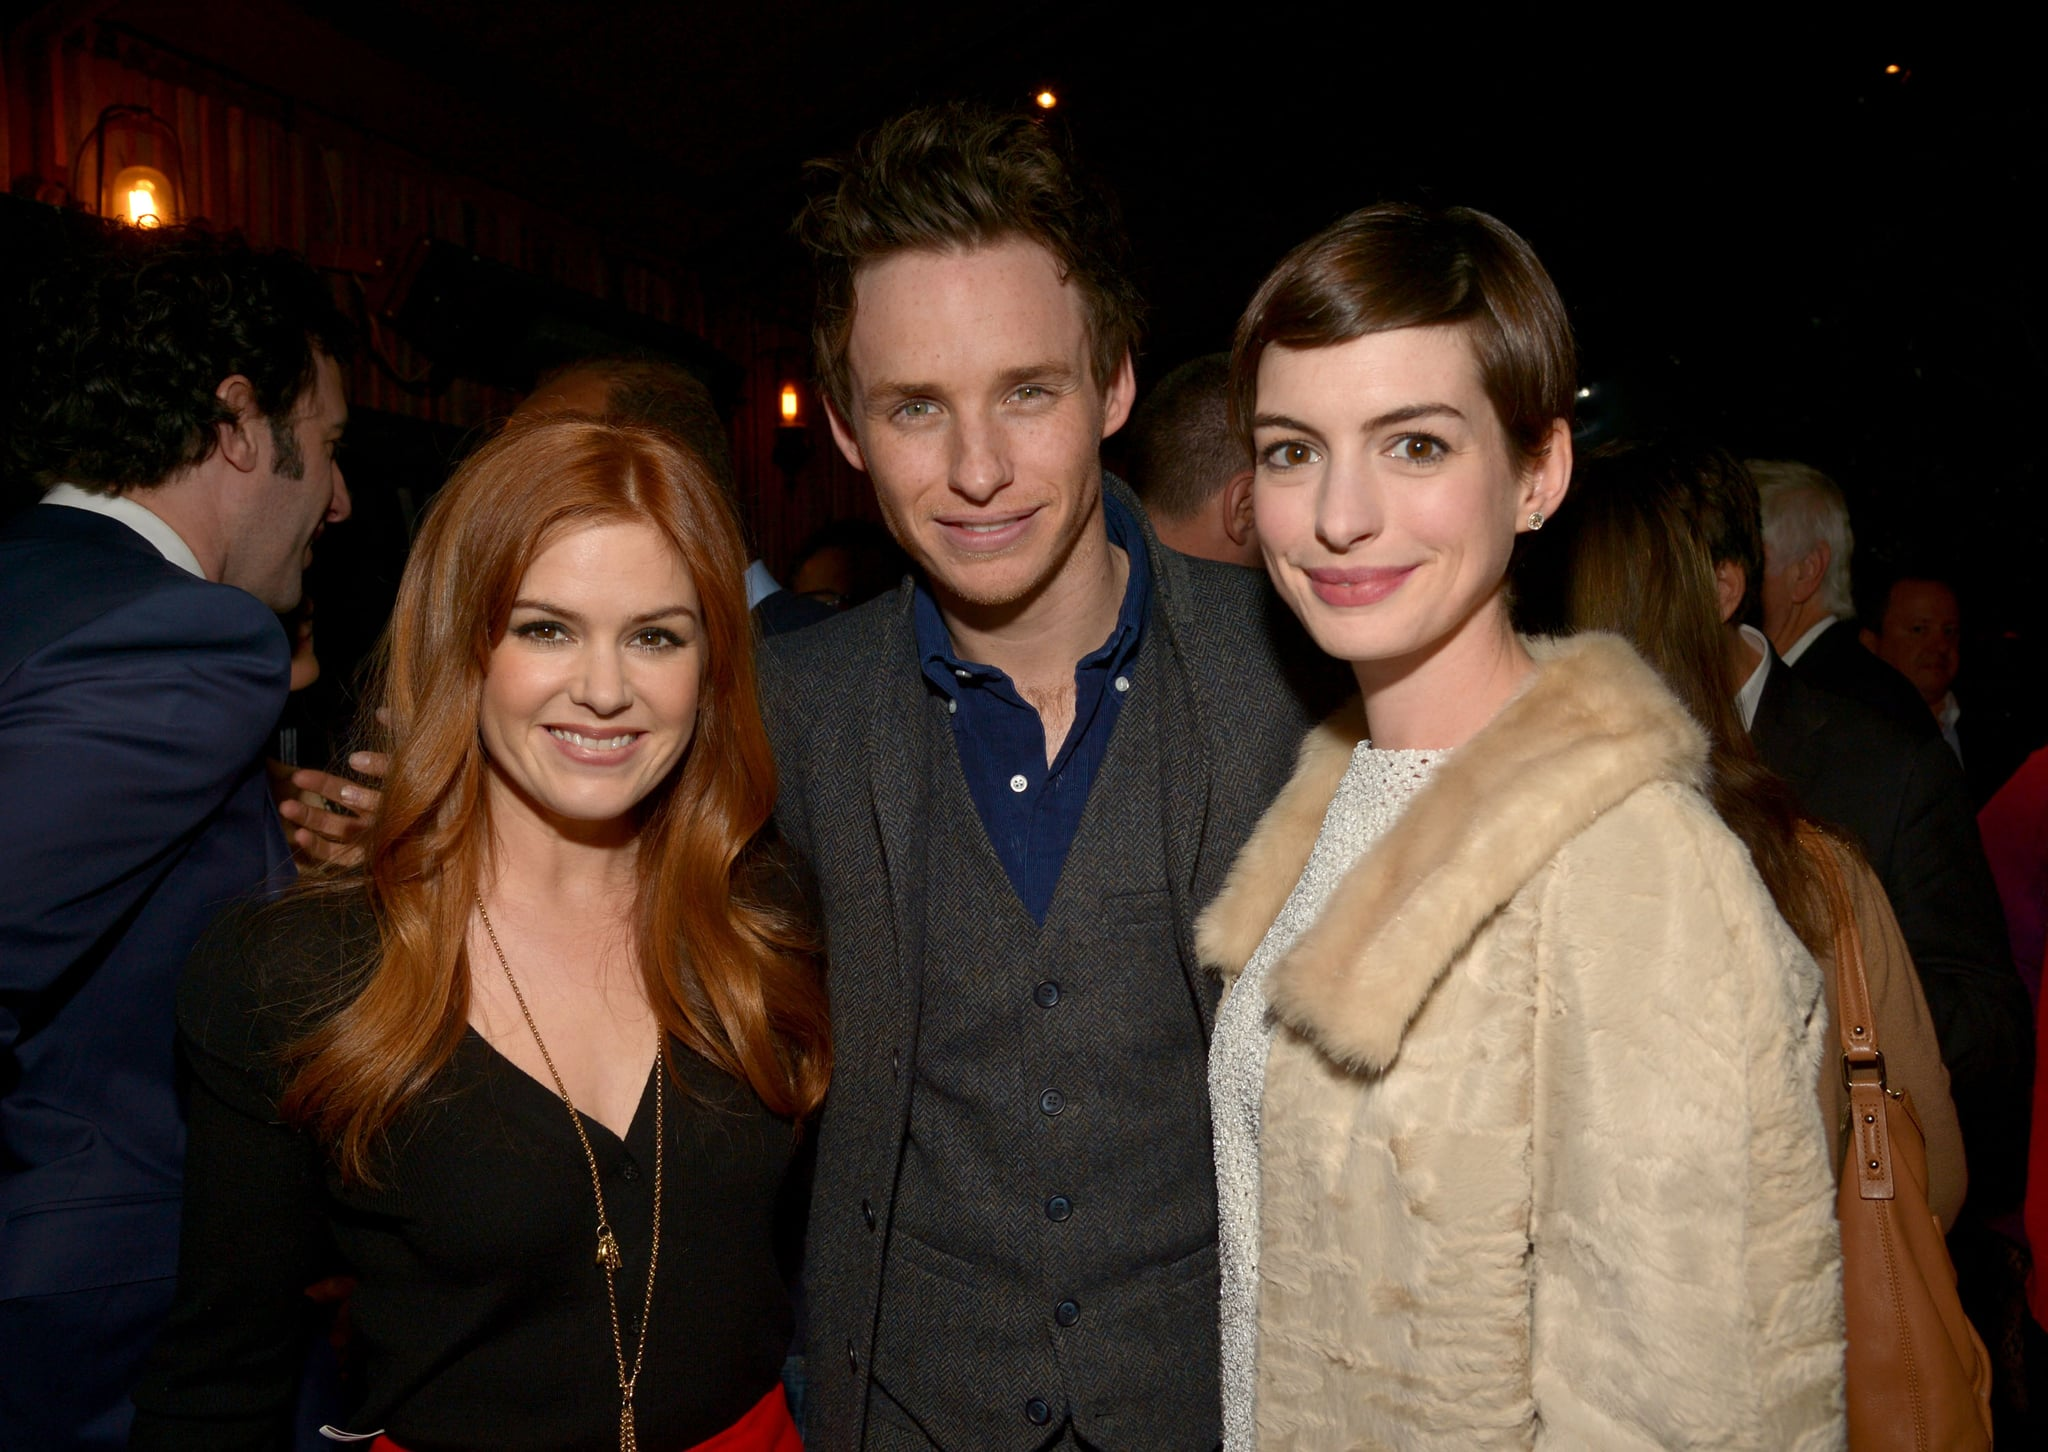 Anne Hathaway, Isla Fisher, and Eddie Redmayne hung out at a Les Misérables pre-Oscars party in LA on Wednesday.